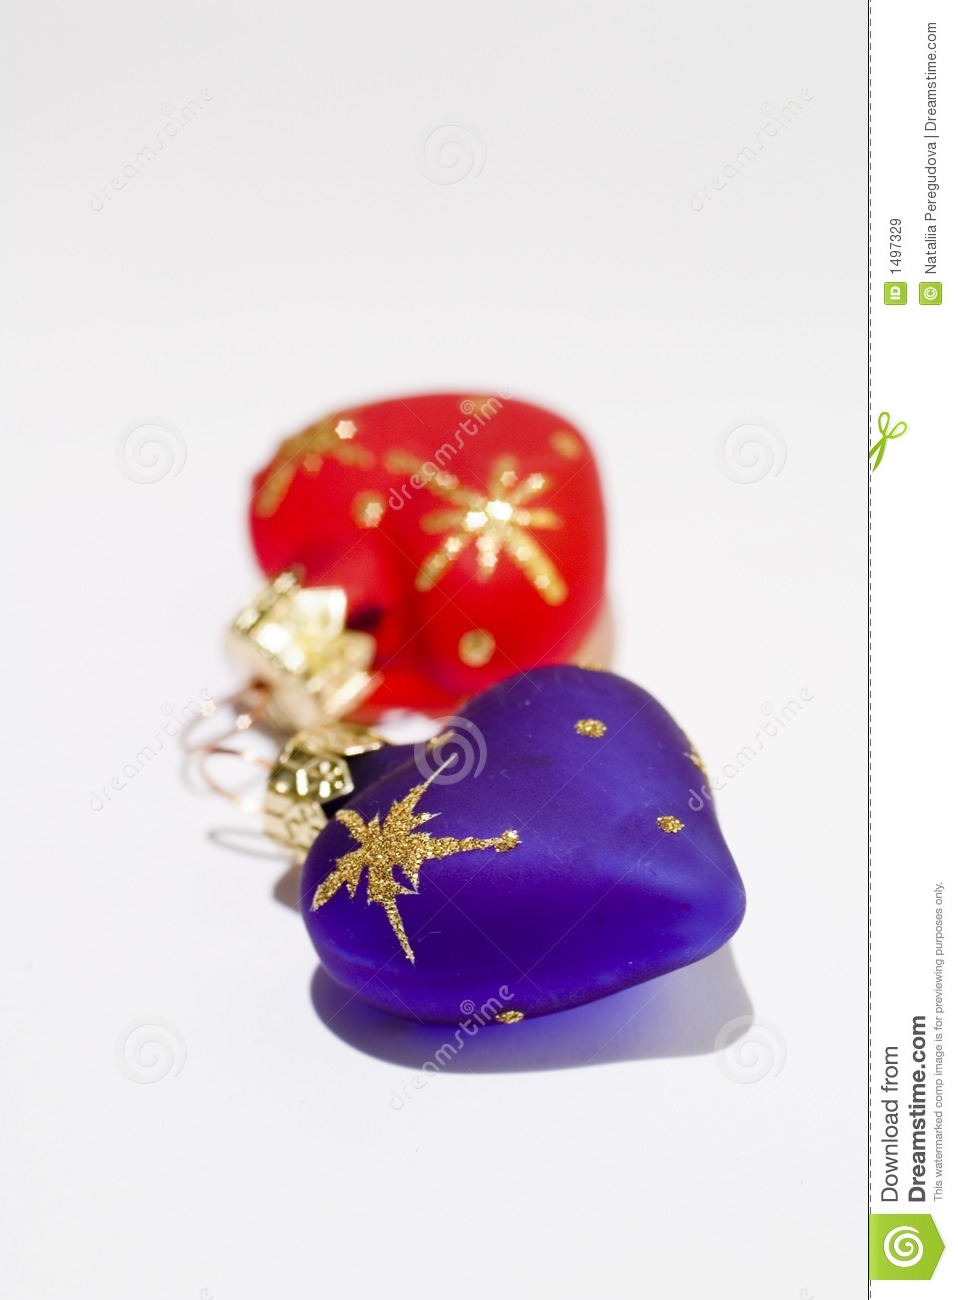 Christmas heart shaped decoration royalty free stock for Heart shaped decorations home